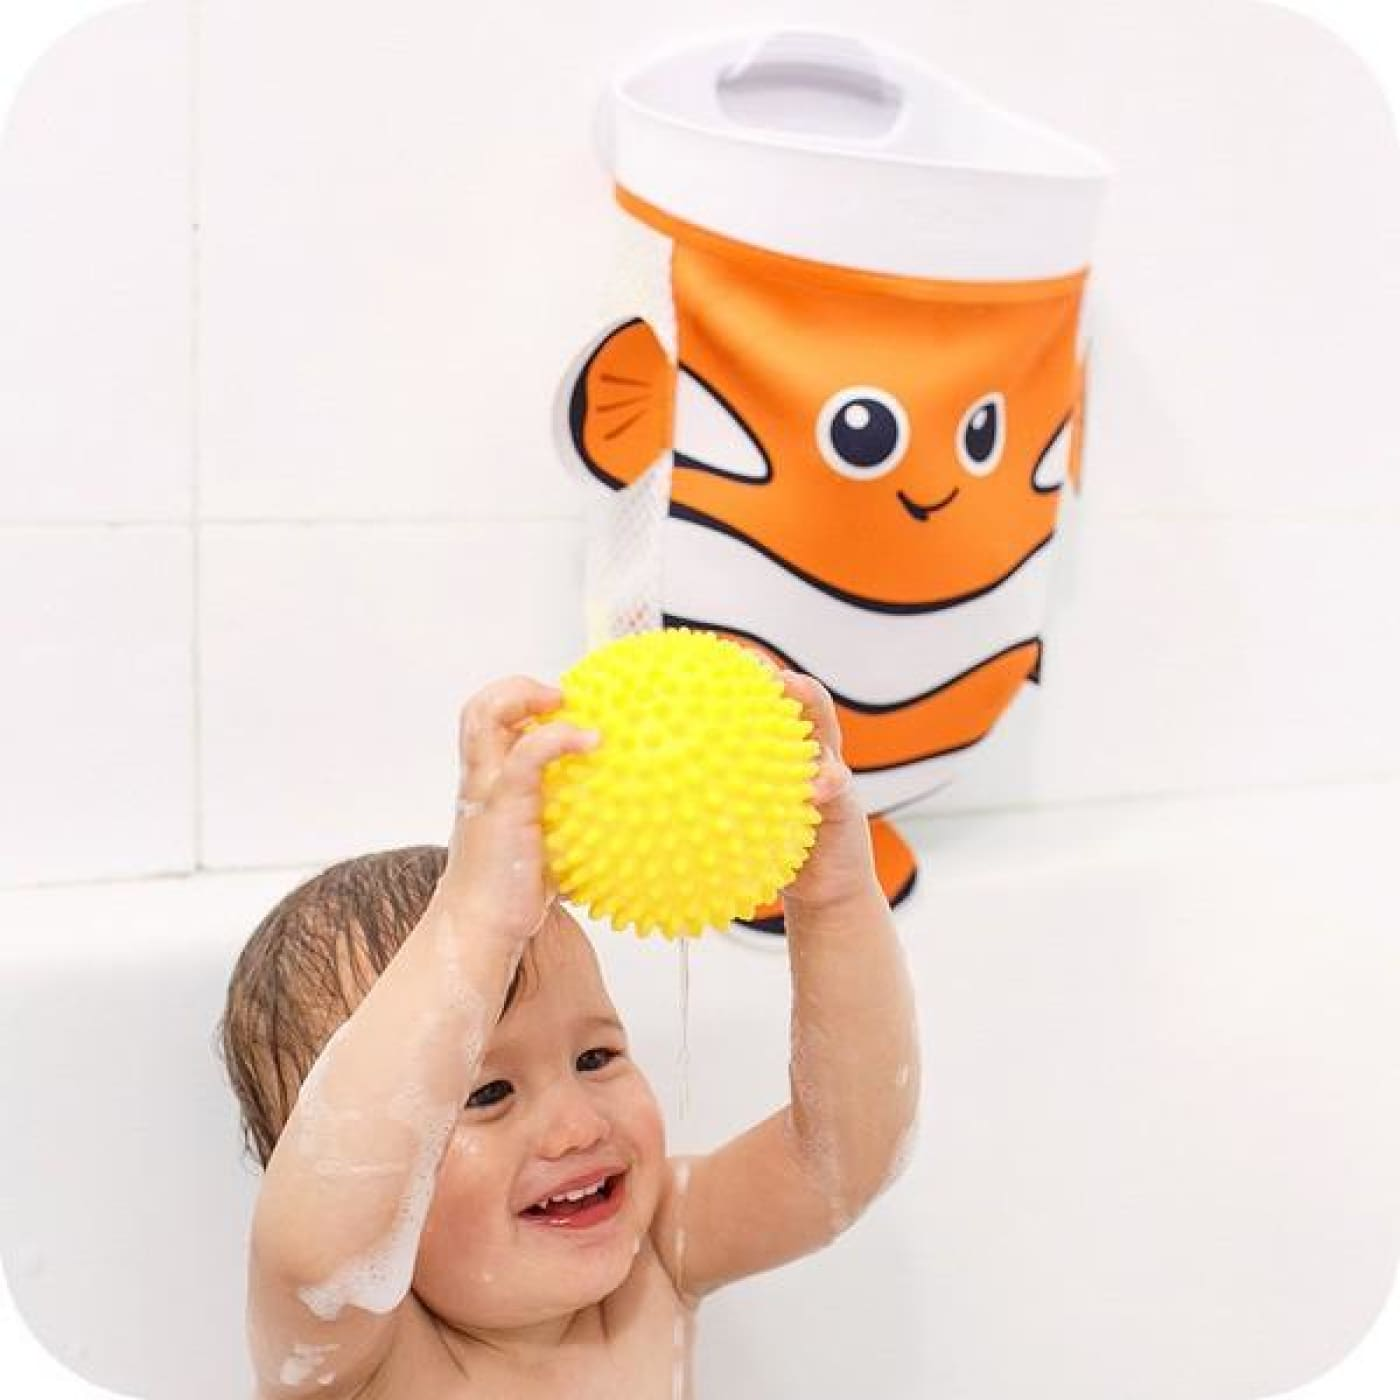 Benbat Scoop & Store Bath Basket - Fish - BATHTIME & CHANGING - BATH TOYS/AIDS